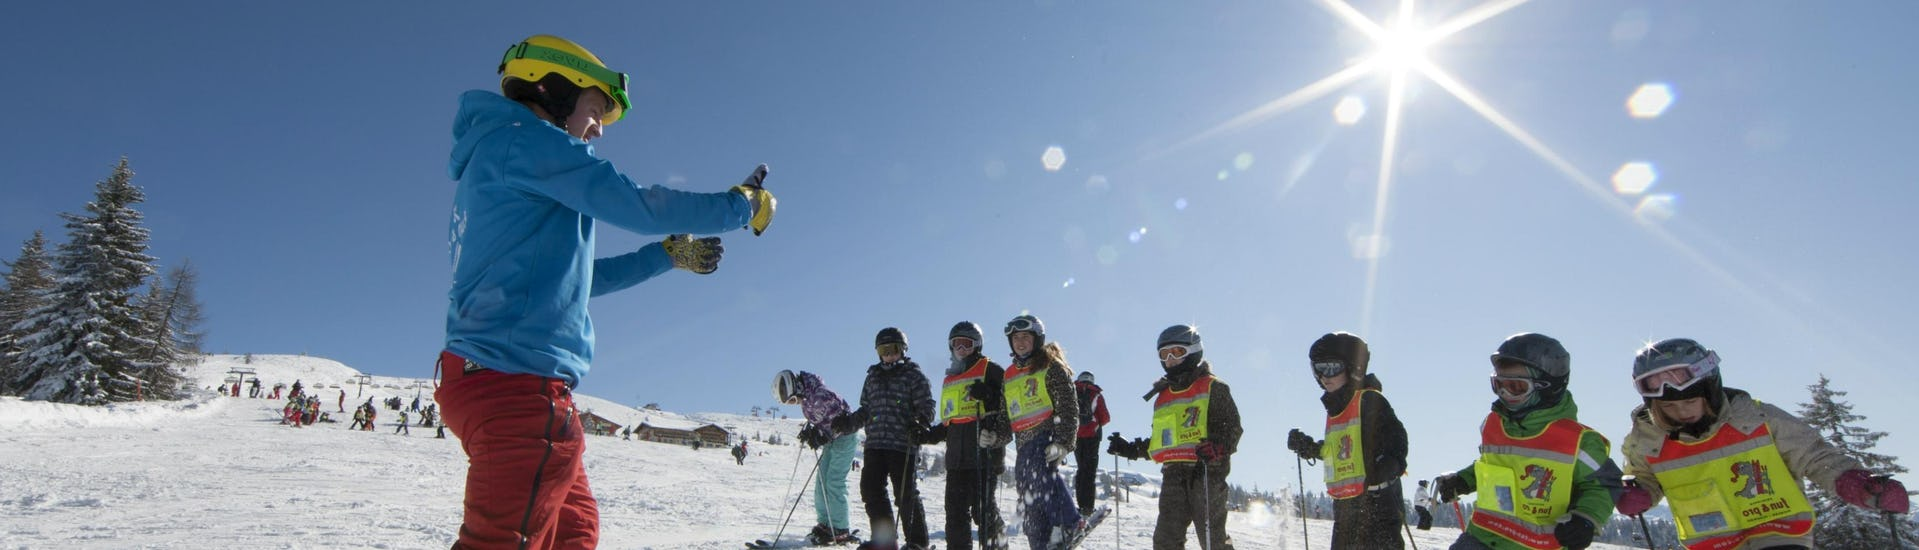 A ski instructor is holding one of the many group ski lessons in the ski resort of Val Thorens.